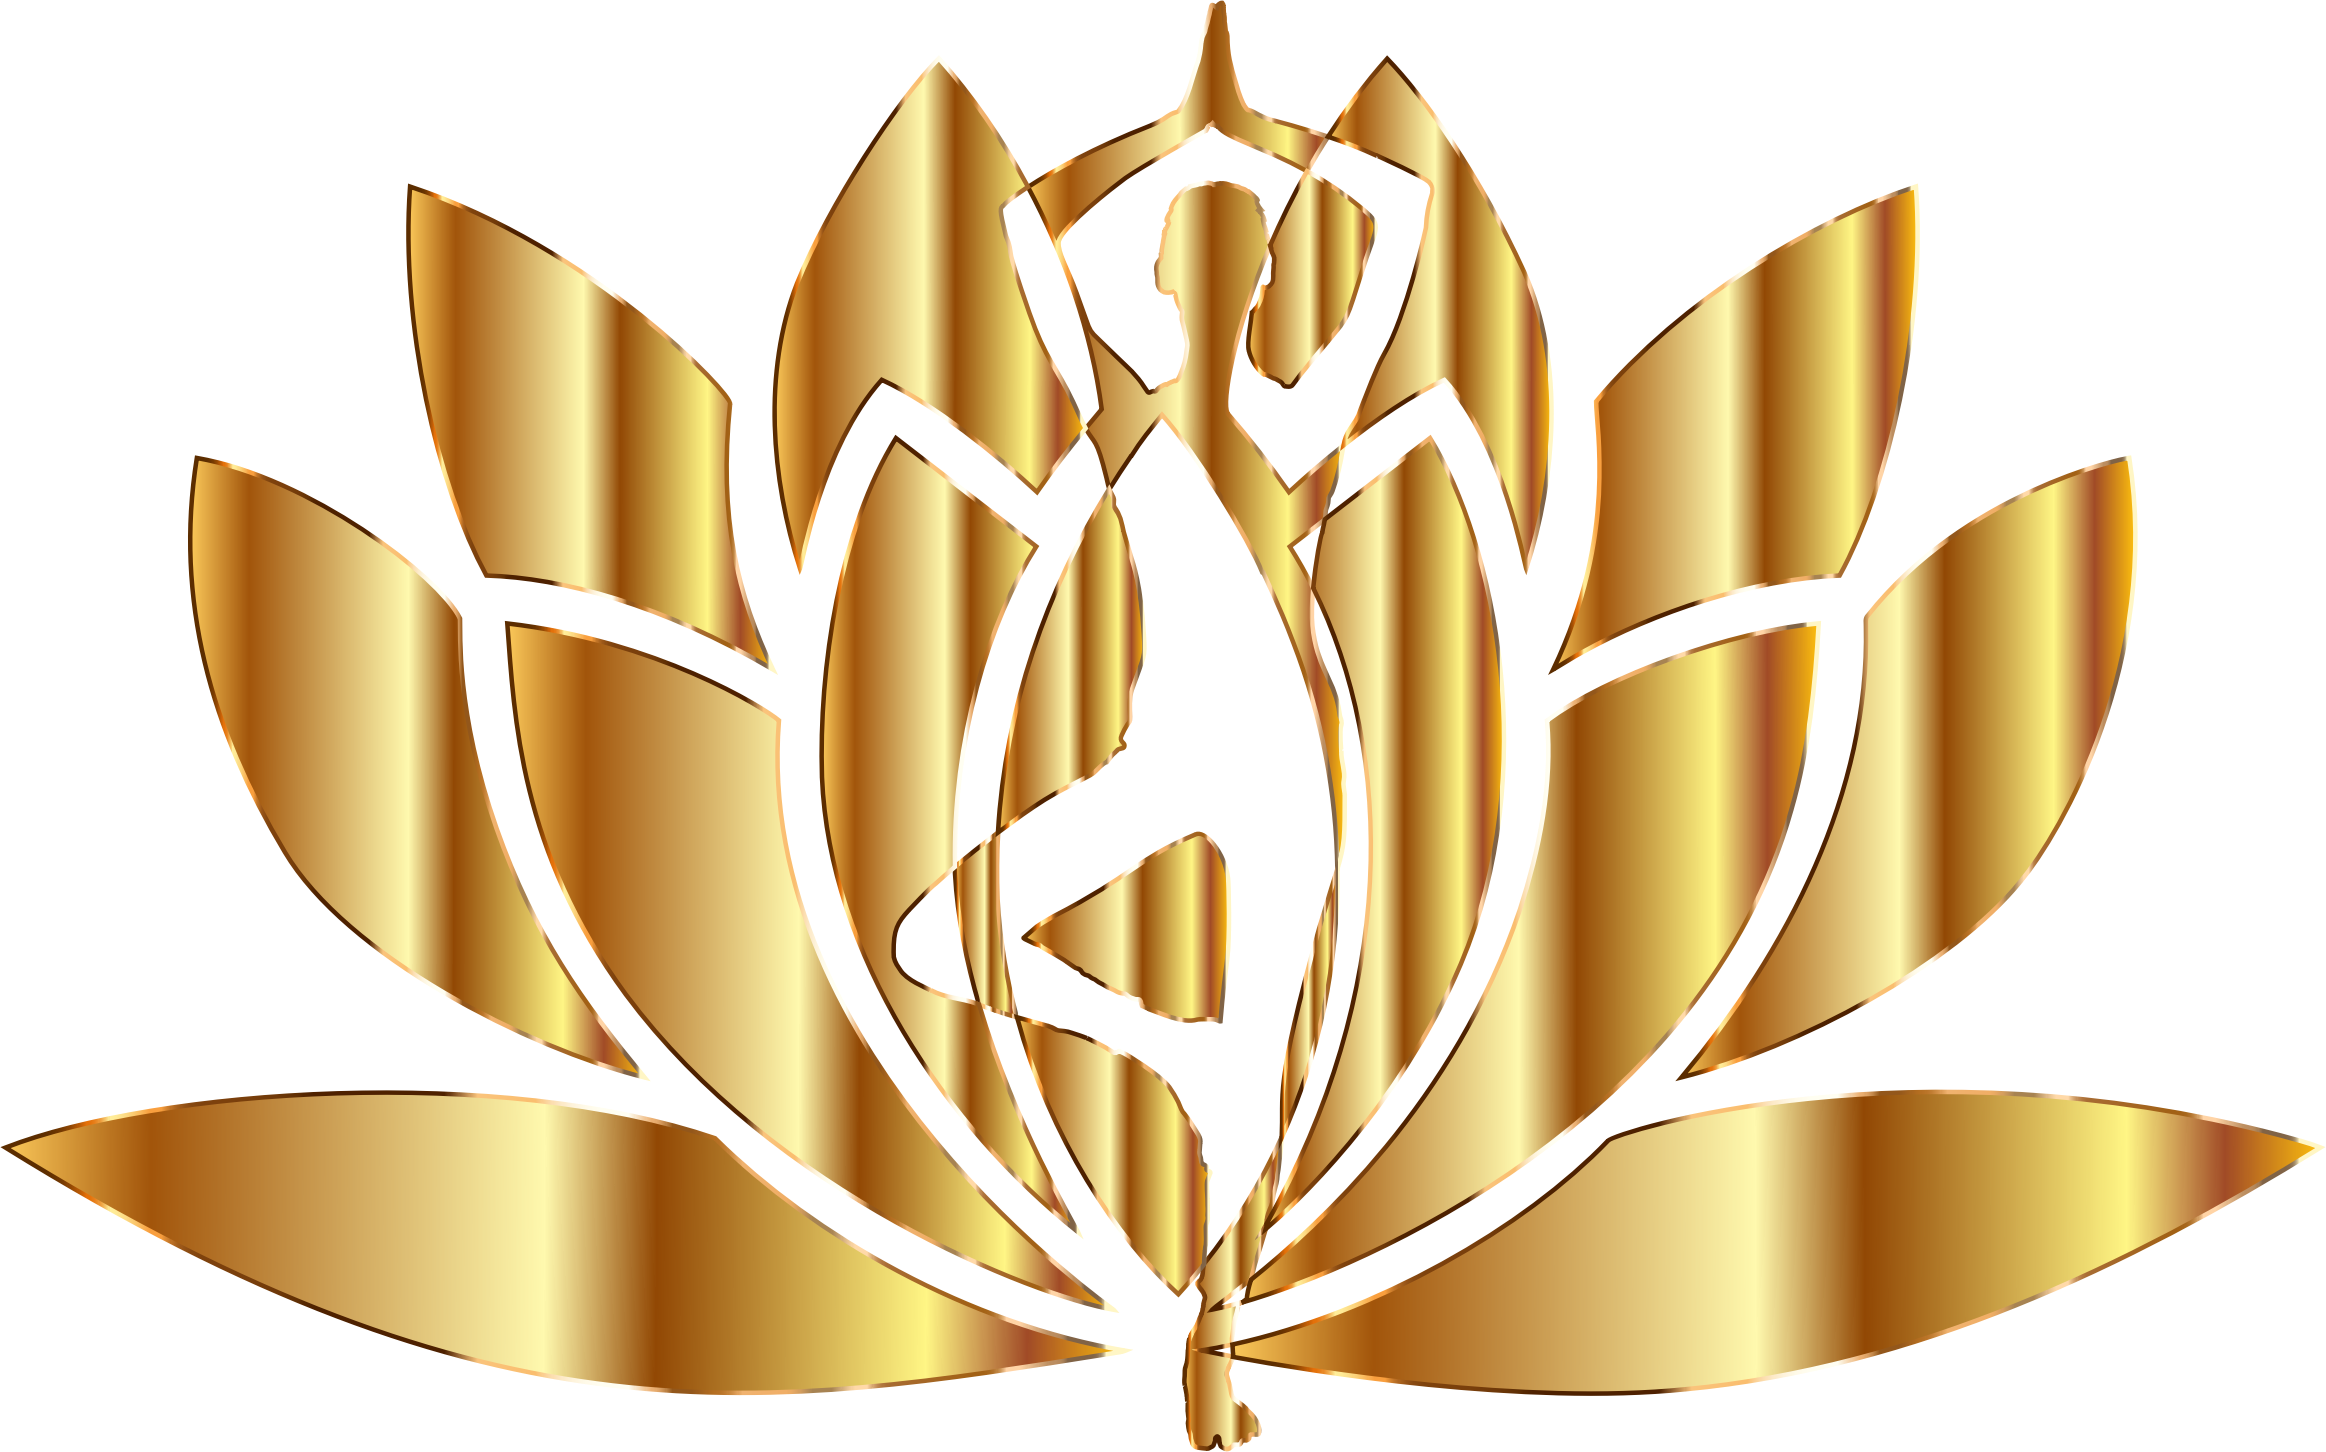 Gold Yoga Lotus No Background by GDJ